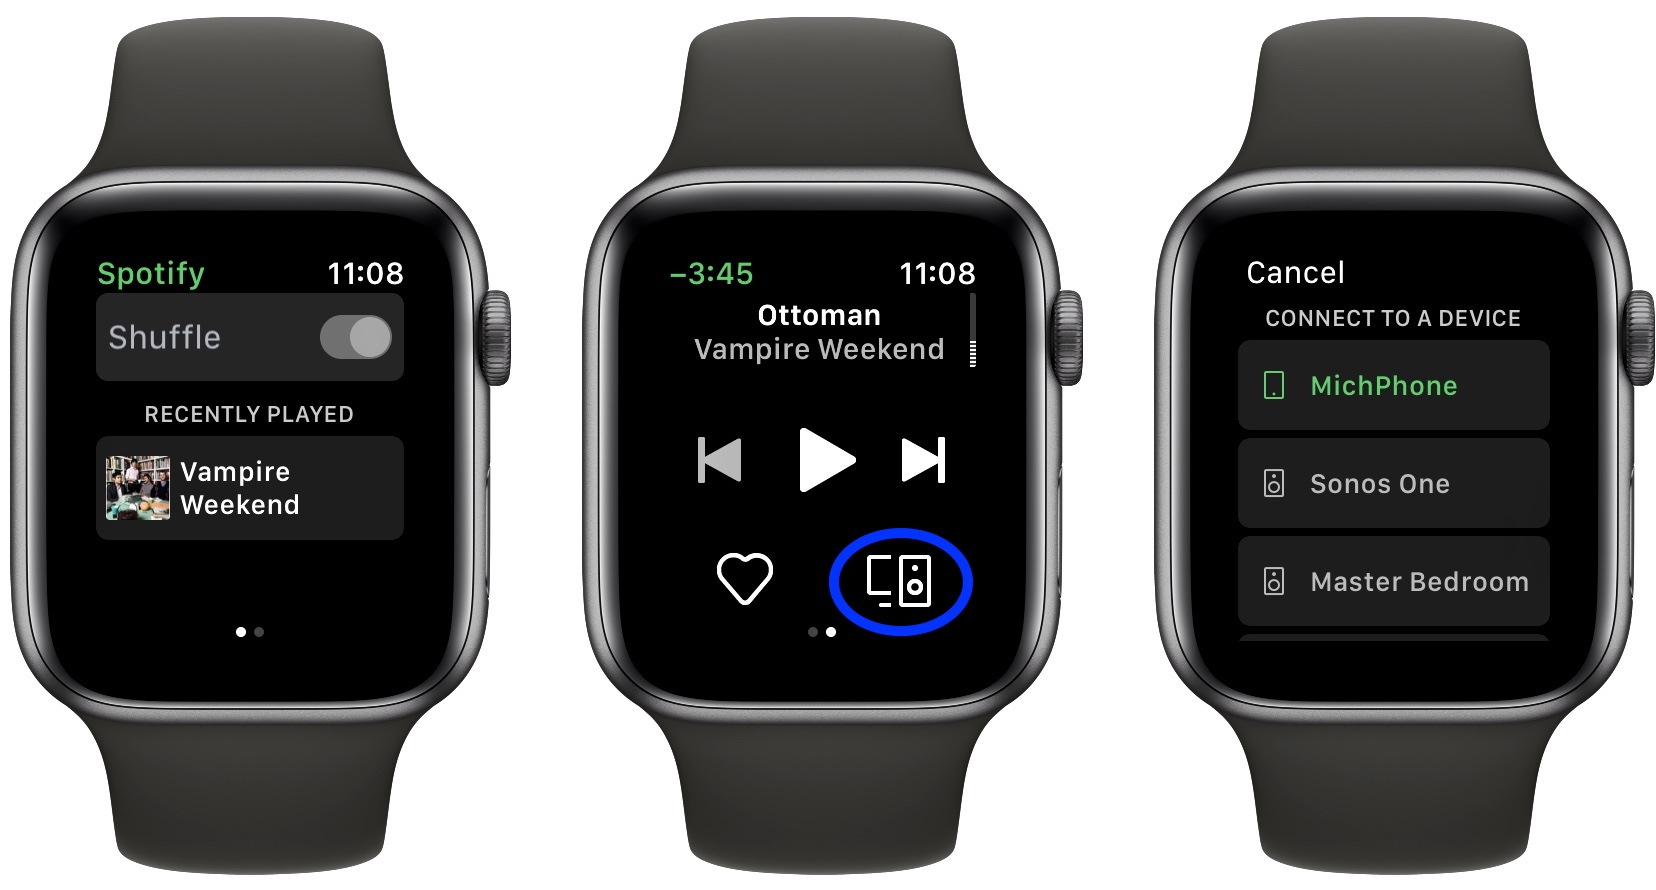 How to get Spotify on Apple Watch